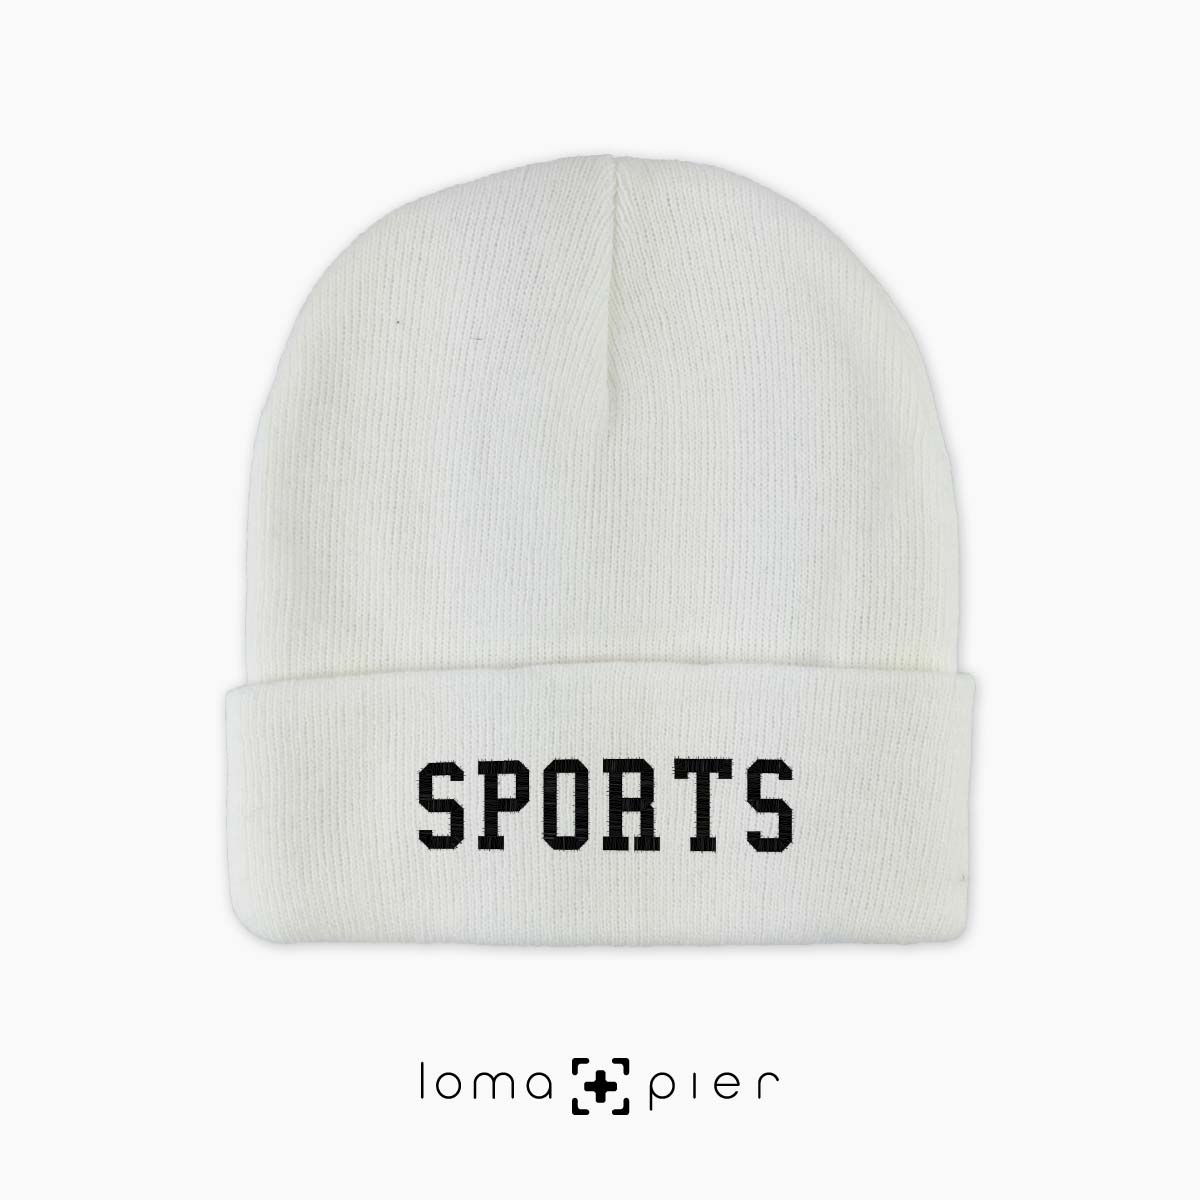 SPORTS cuffed beanie cap by the loma+pier hat shop